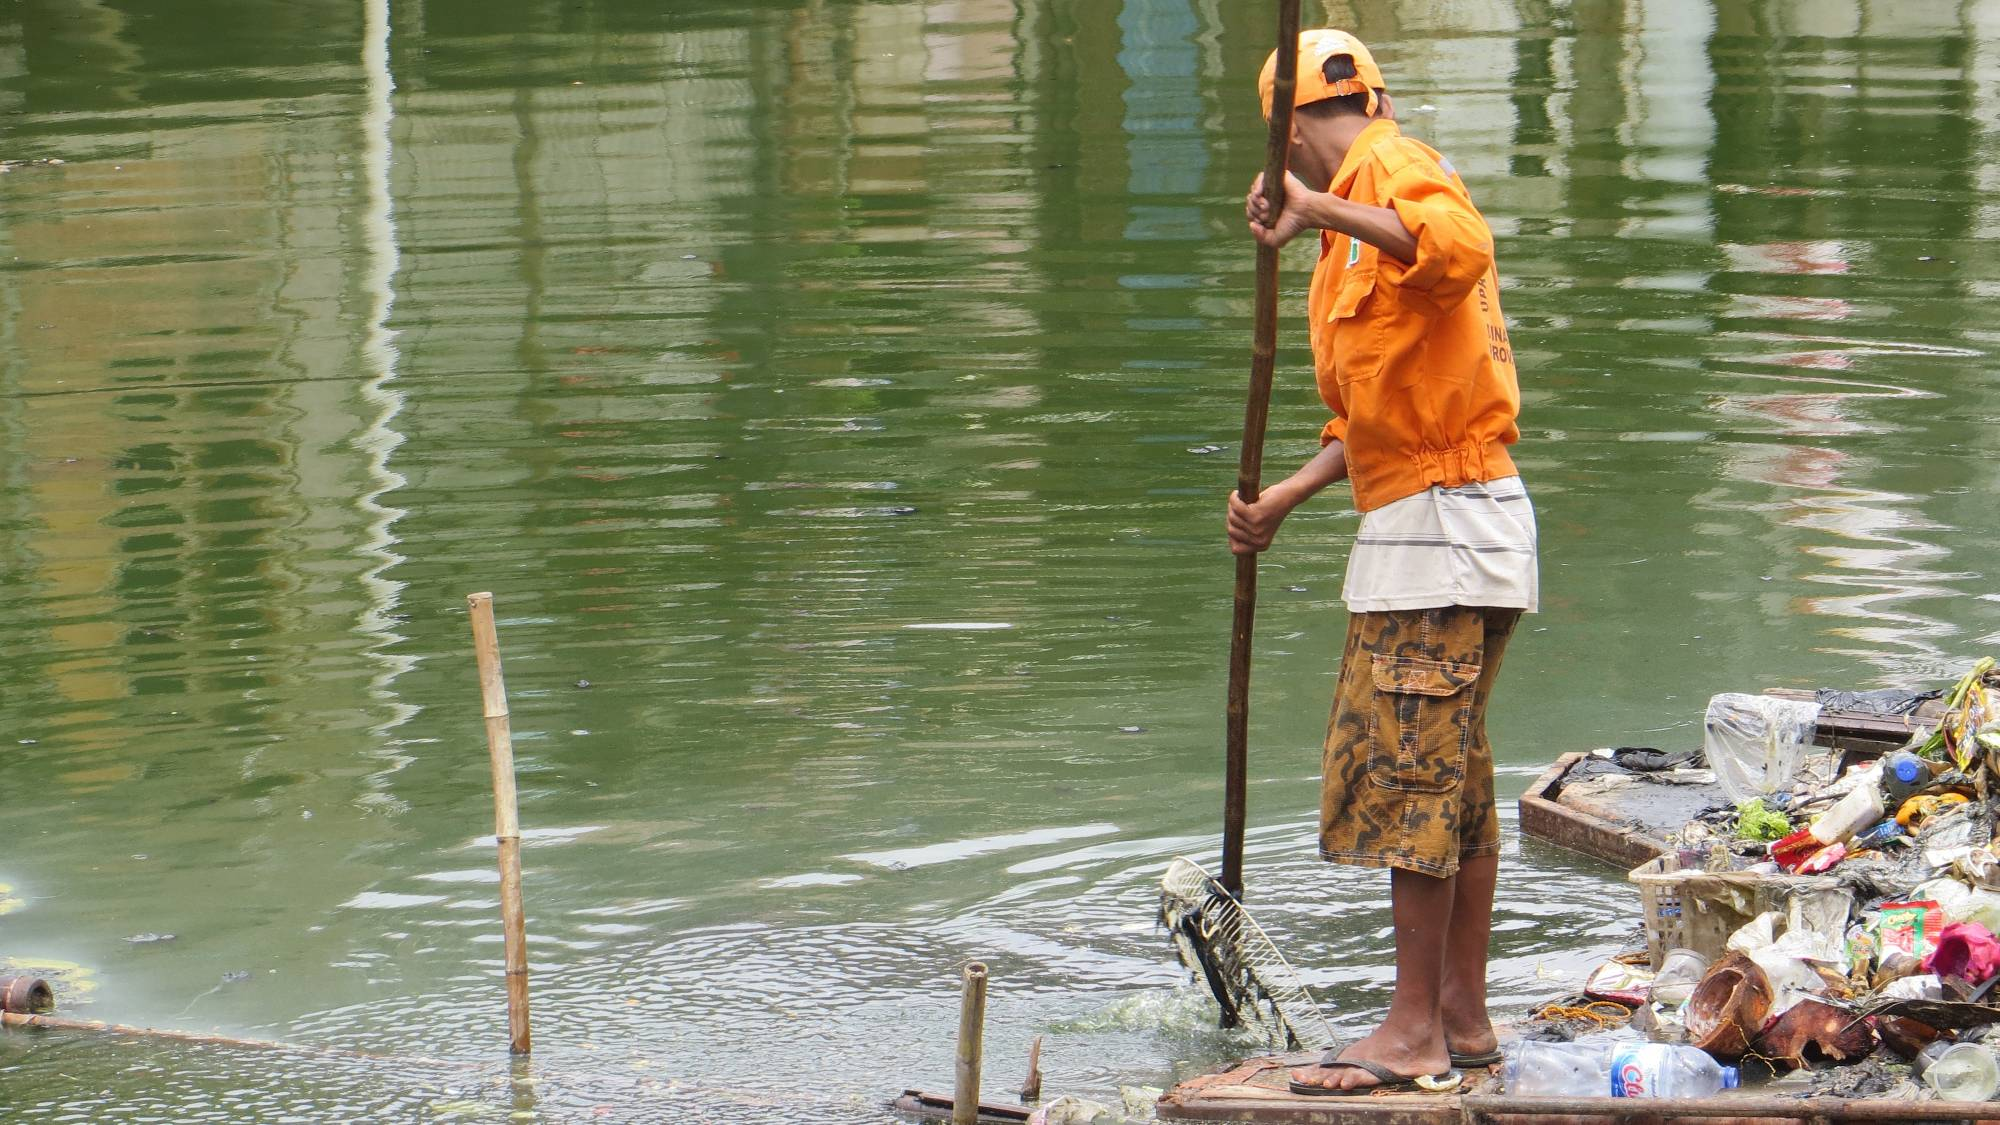 A man picking up waste standing on a raft in a river.